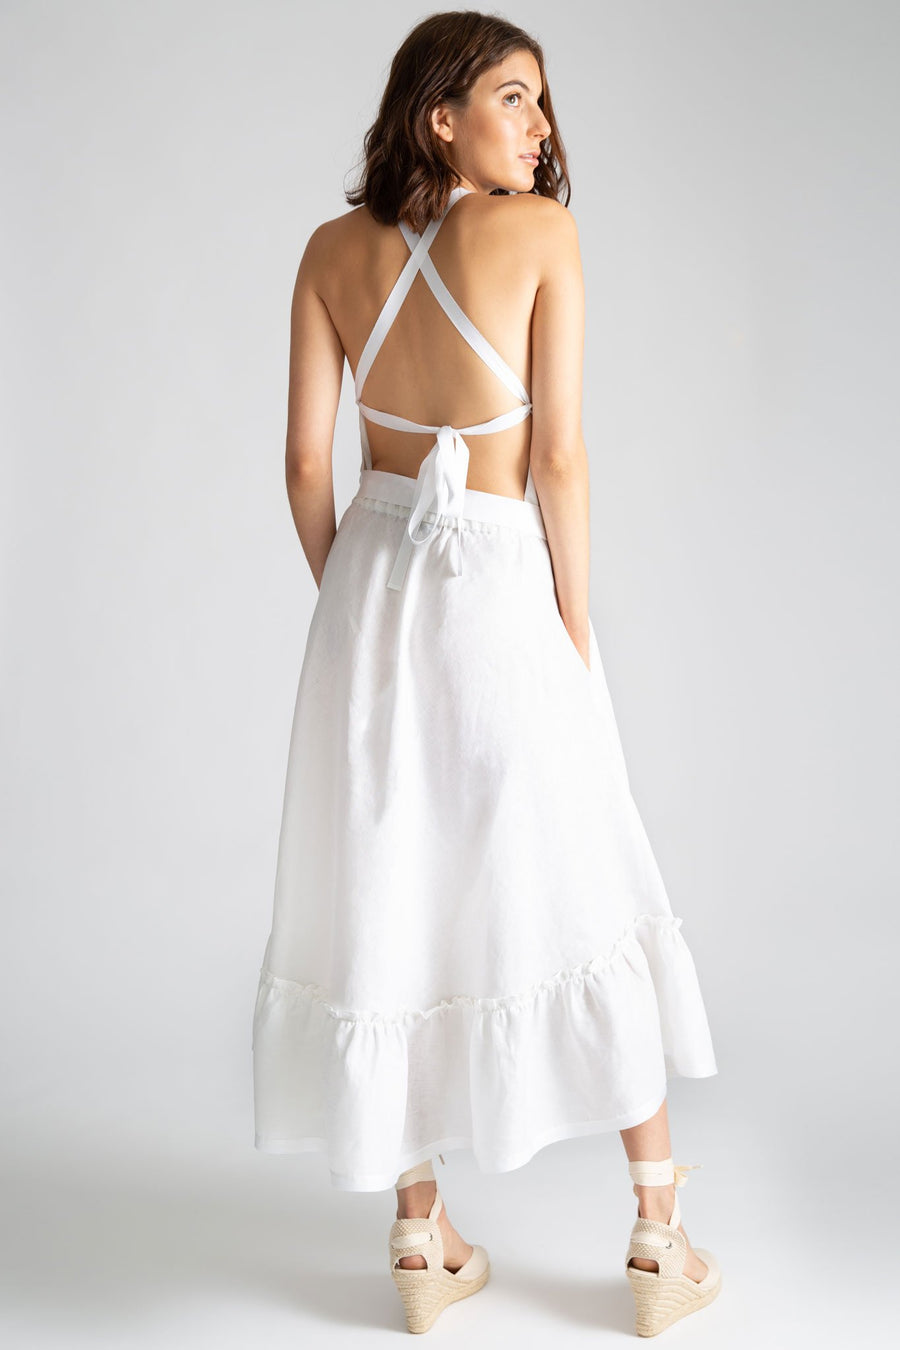 This is a photo of the back of a solid white linen dress. The back features an open criss-cross look with gross grain ribbon and side pockets on seam.